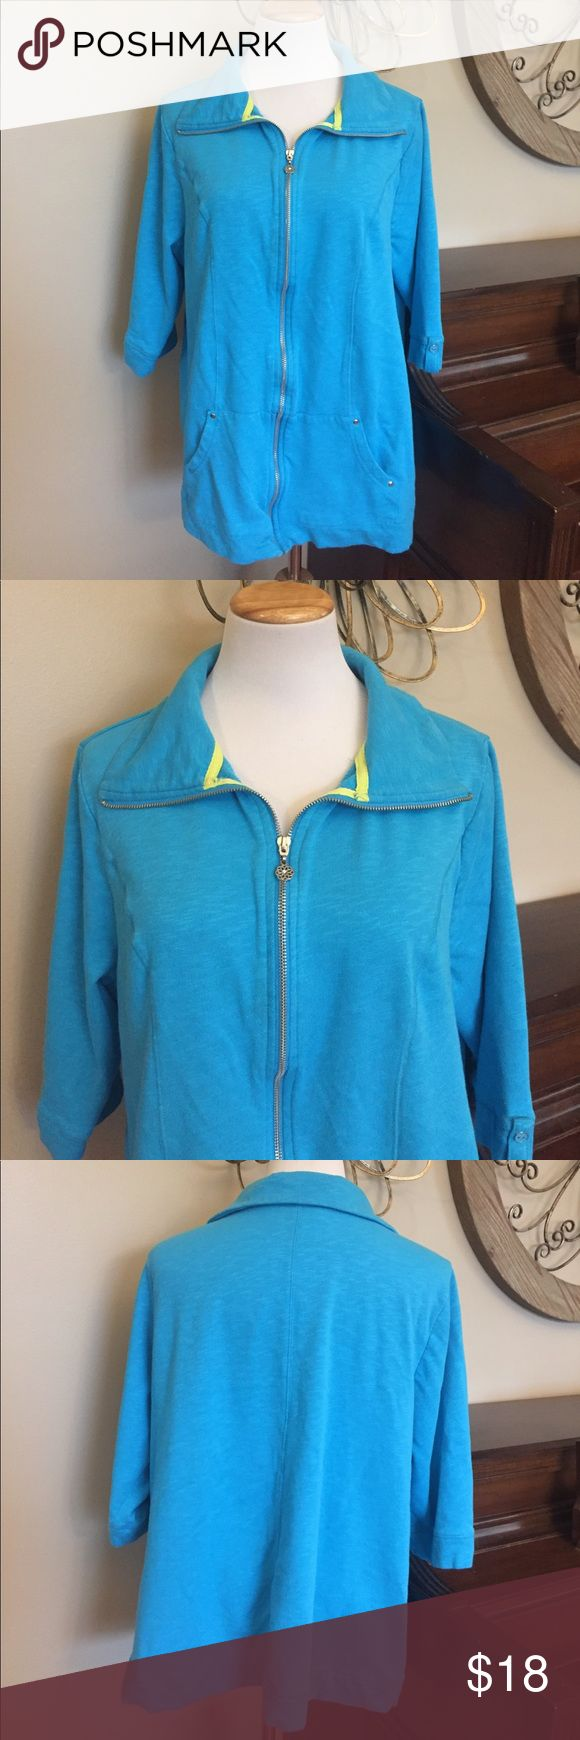 Catherine's Size 1X Blue Zip Up Sweatshirt Jacket Good condition. No stains holes etc. Has minimal was wear - not really noticeable but wanted to mention. Zips up the front. Size 1X from Avenue Avenue Tops Sweatshirts & Hoodies